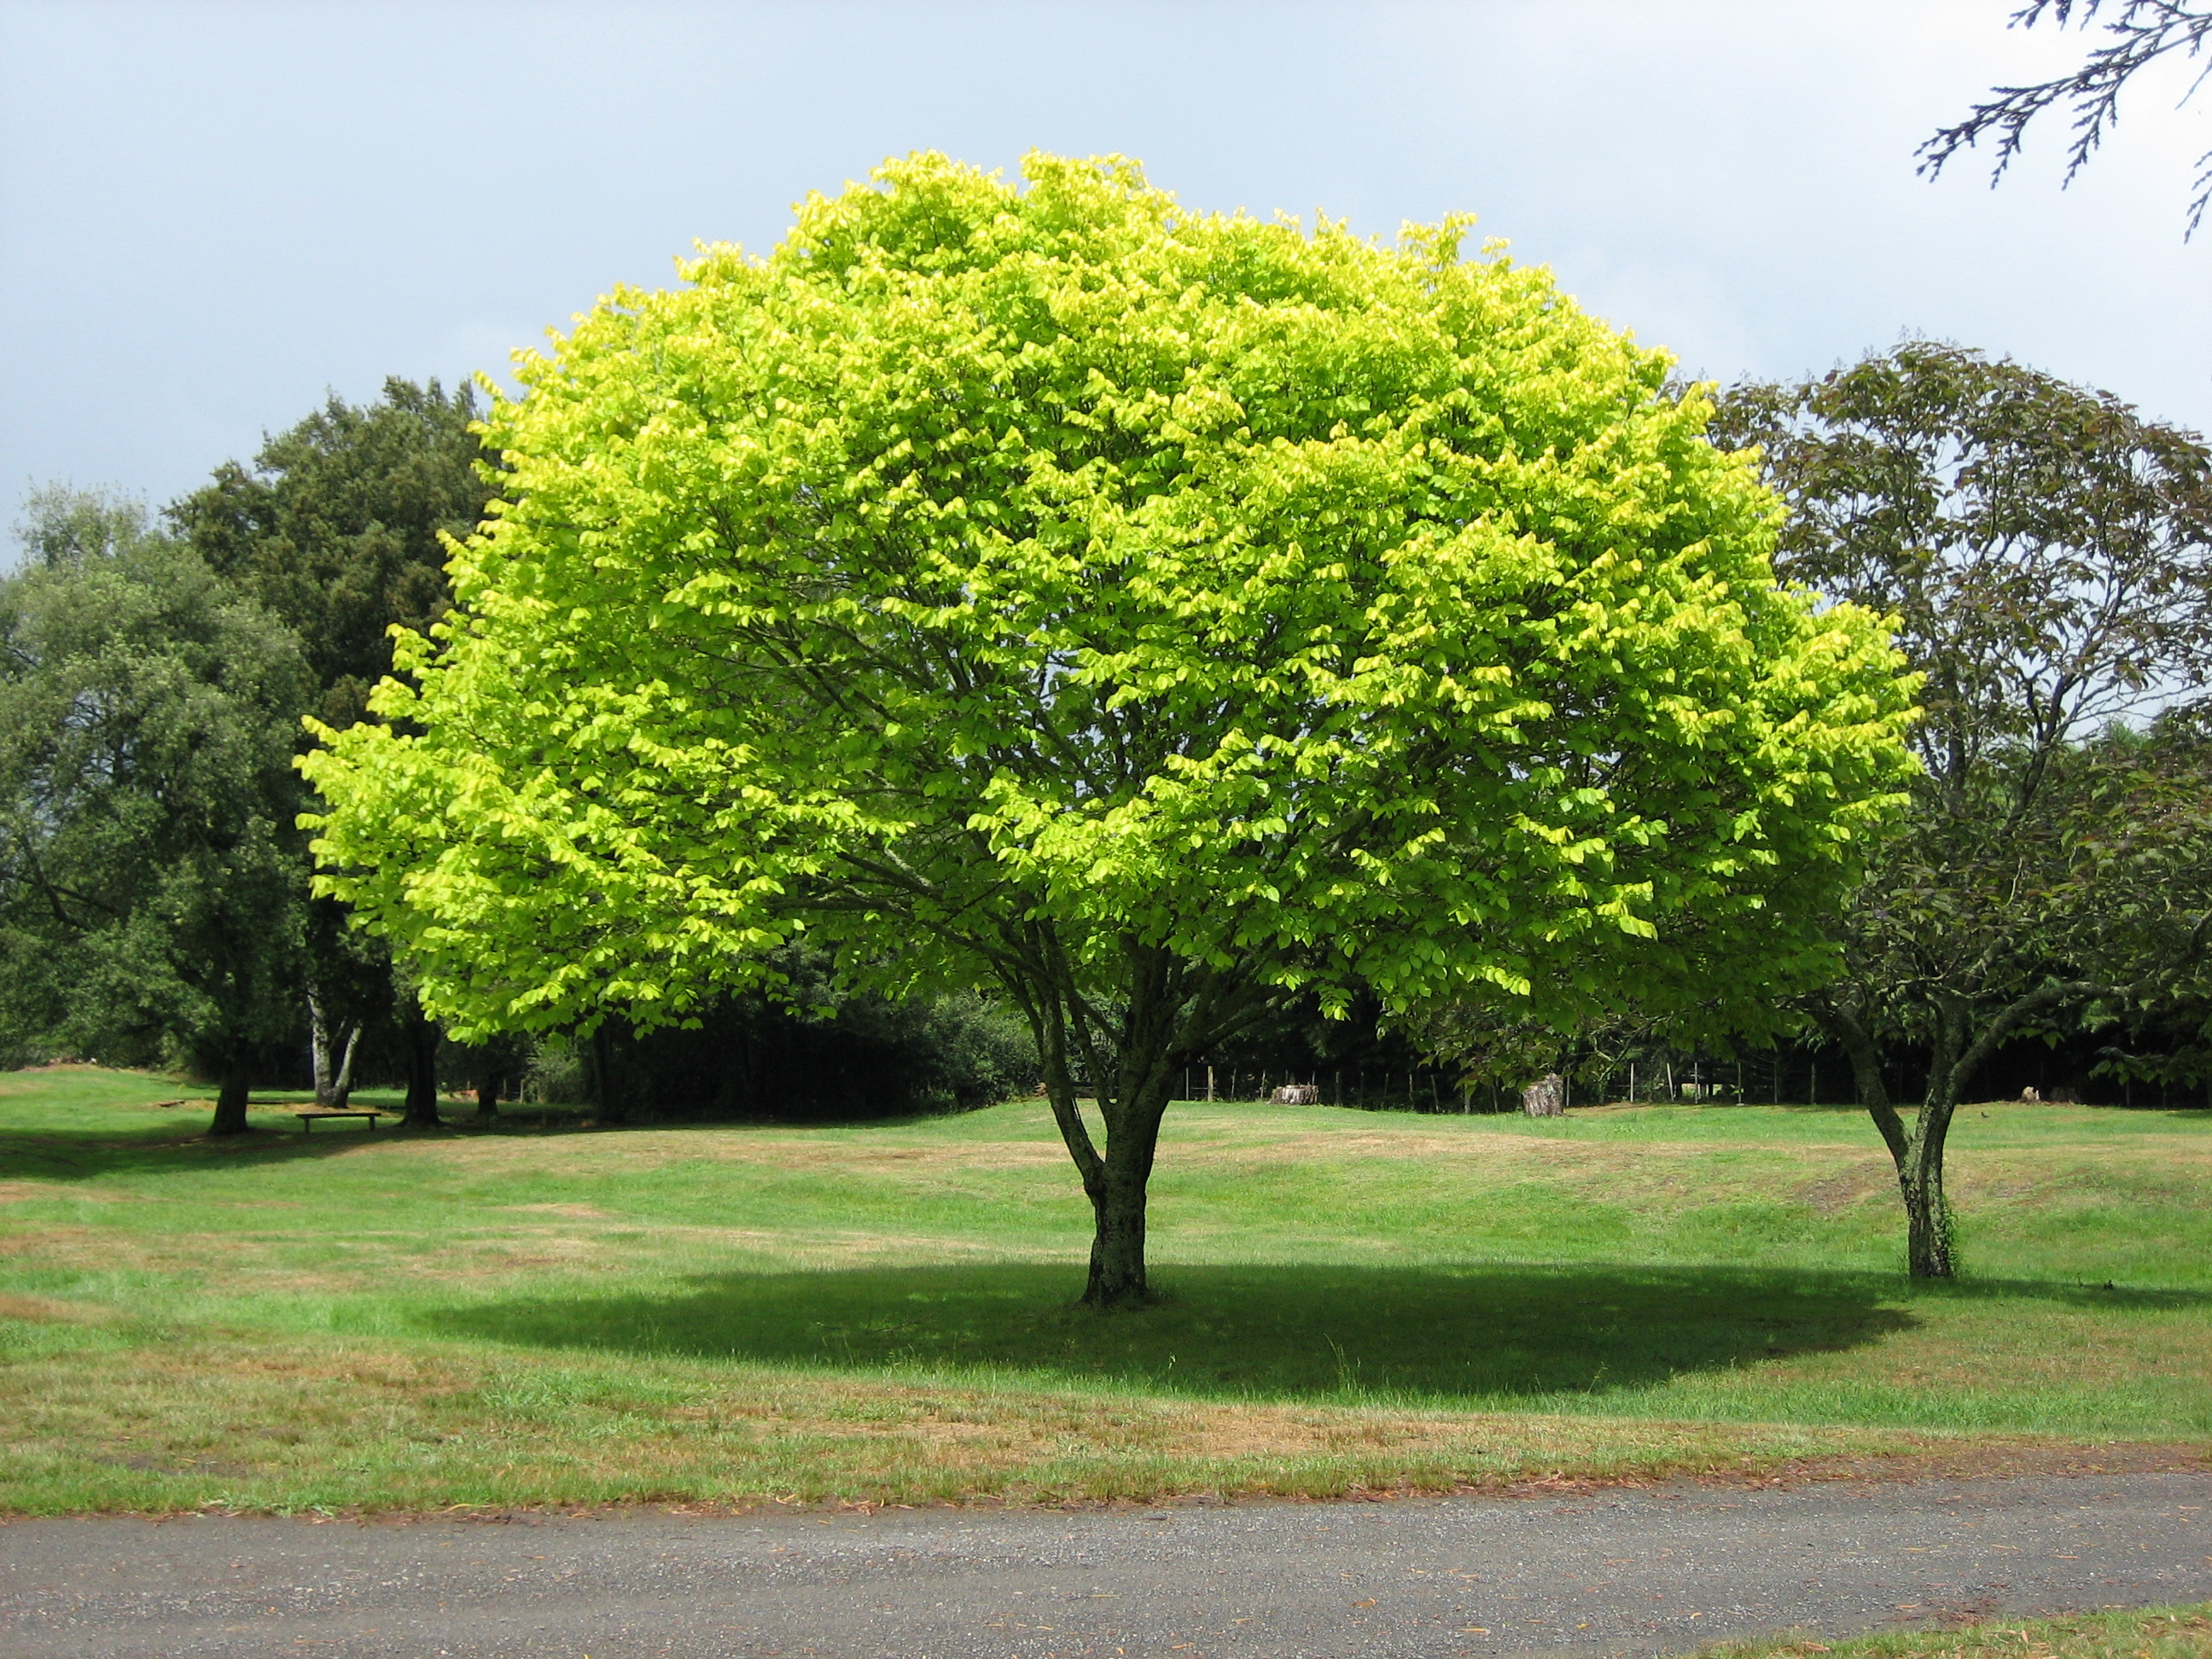 Green tree photo